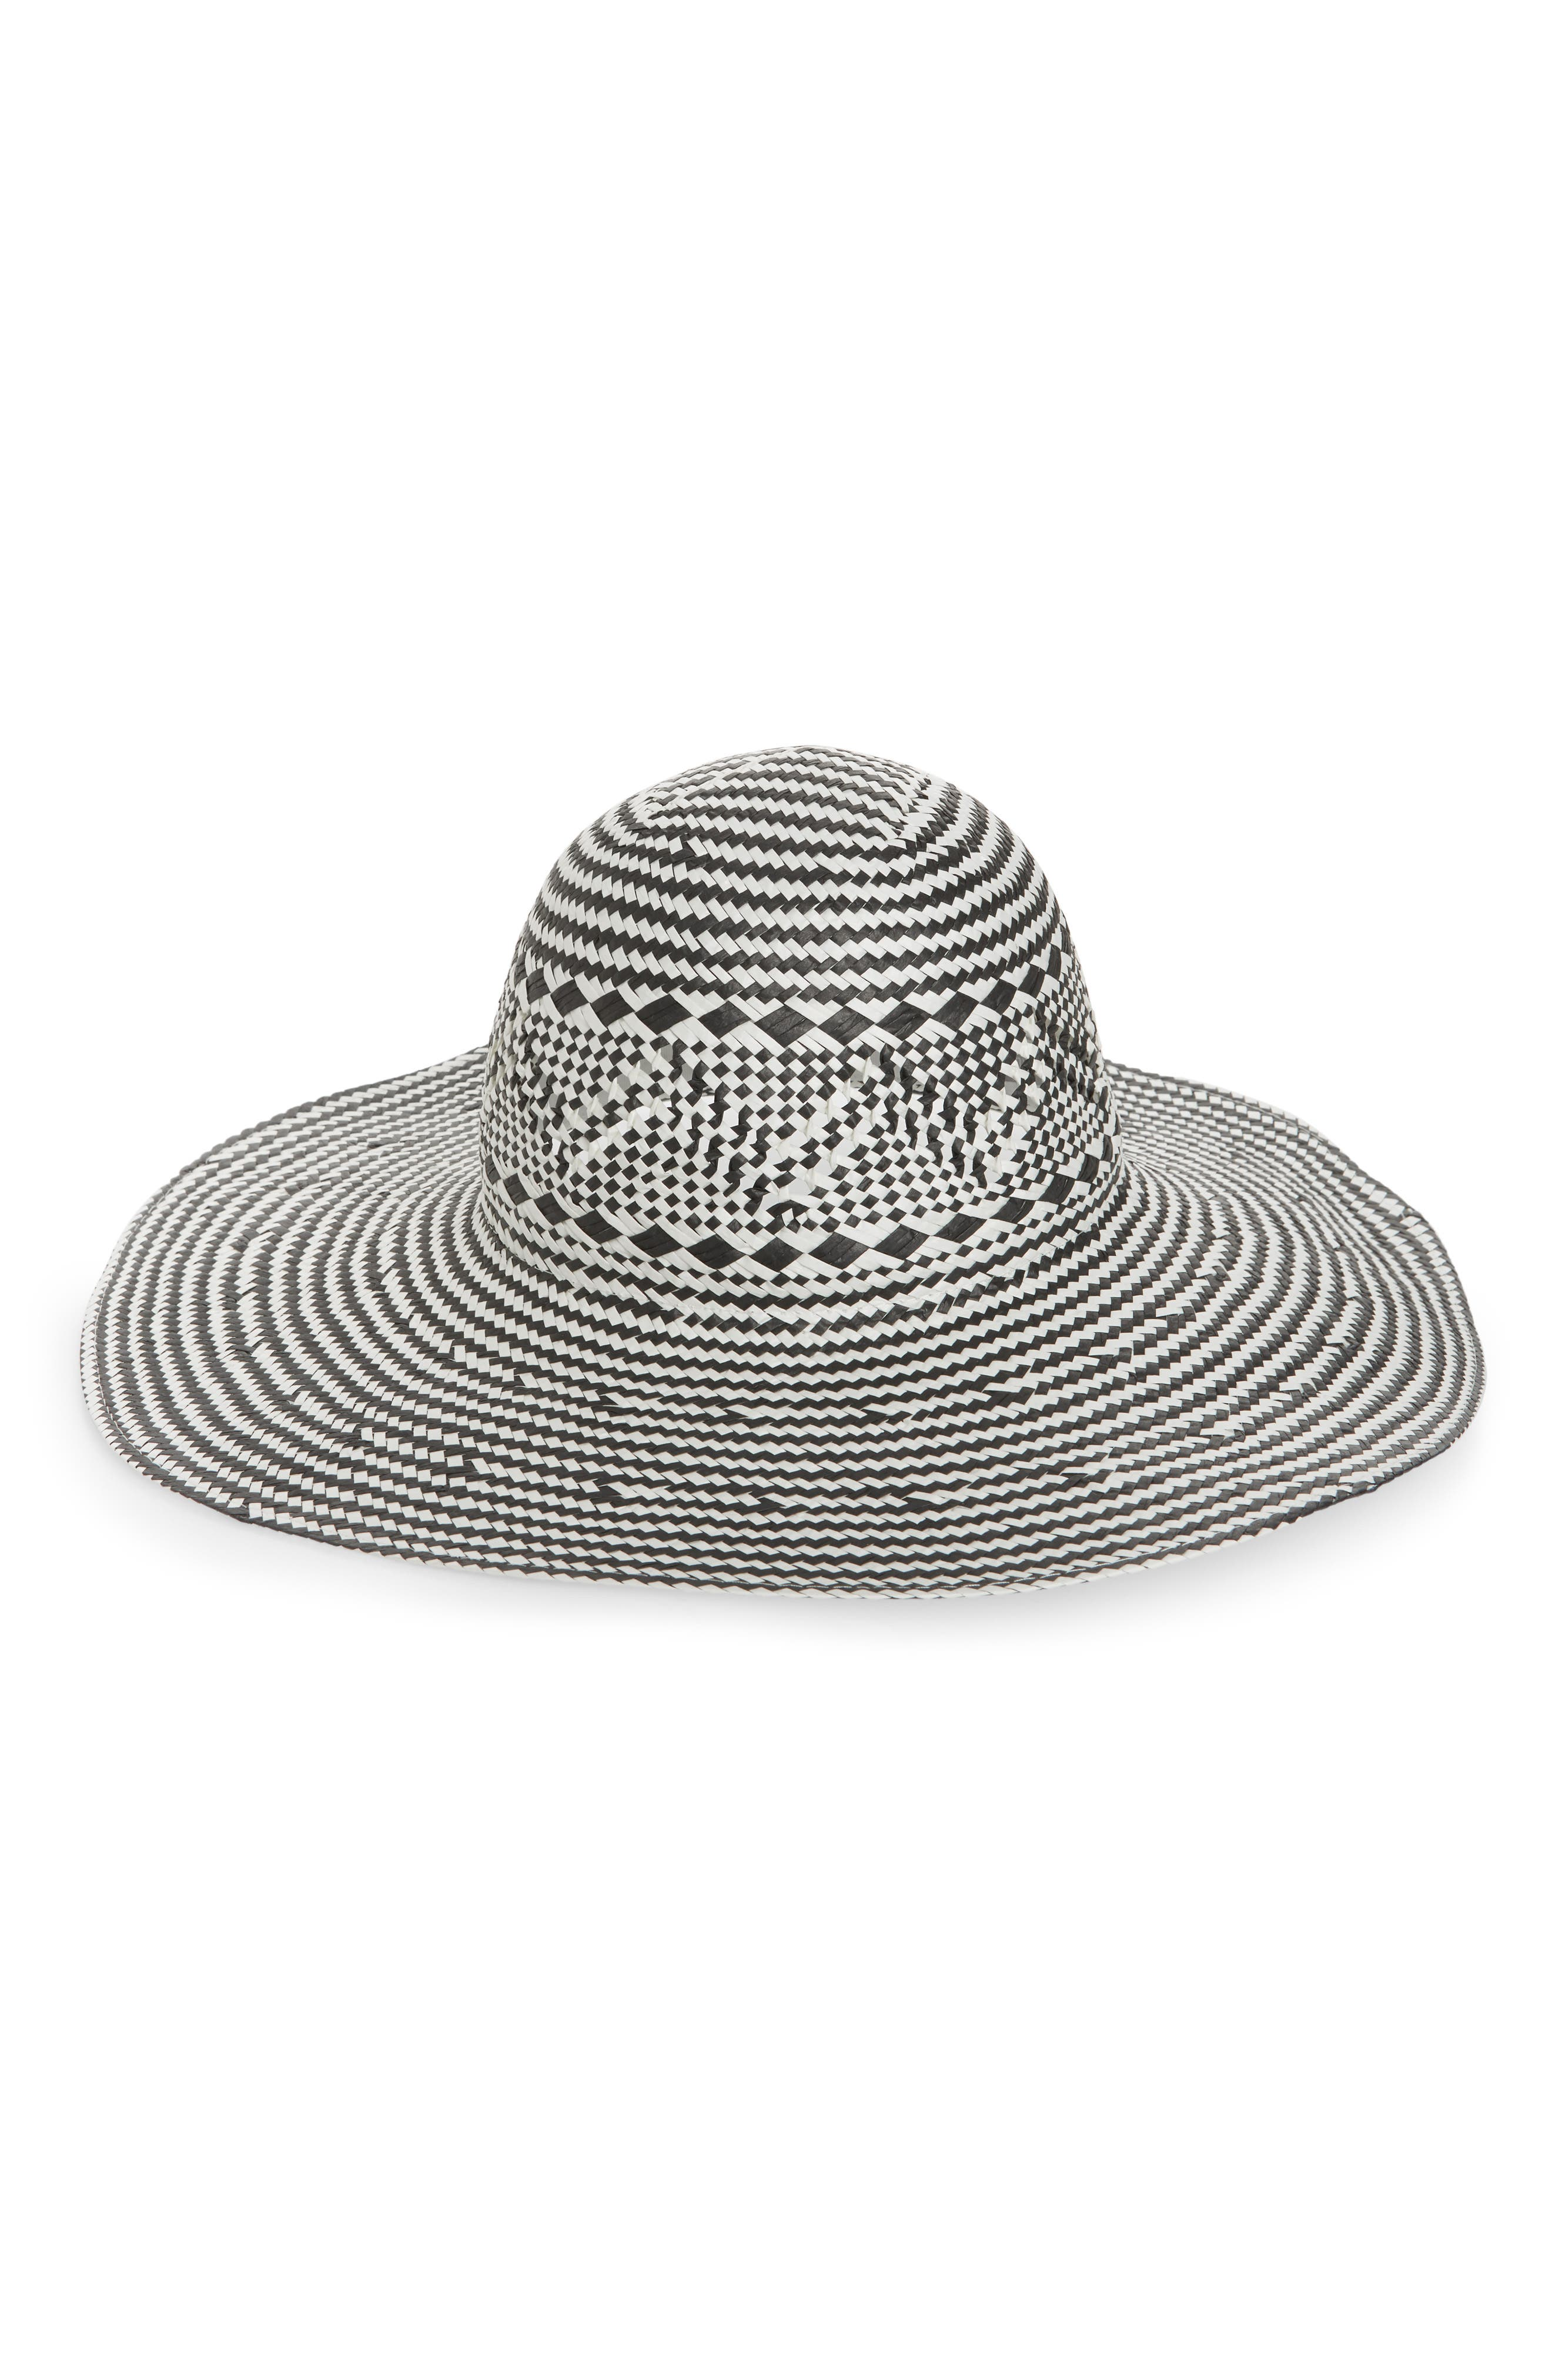 Two-Tone Floppy Straw Hat,                         Main,                         color,